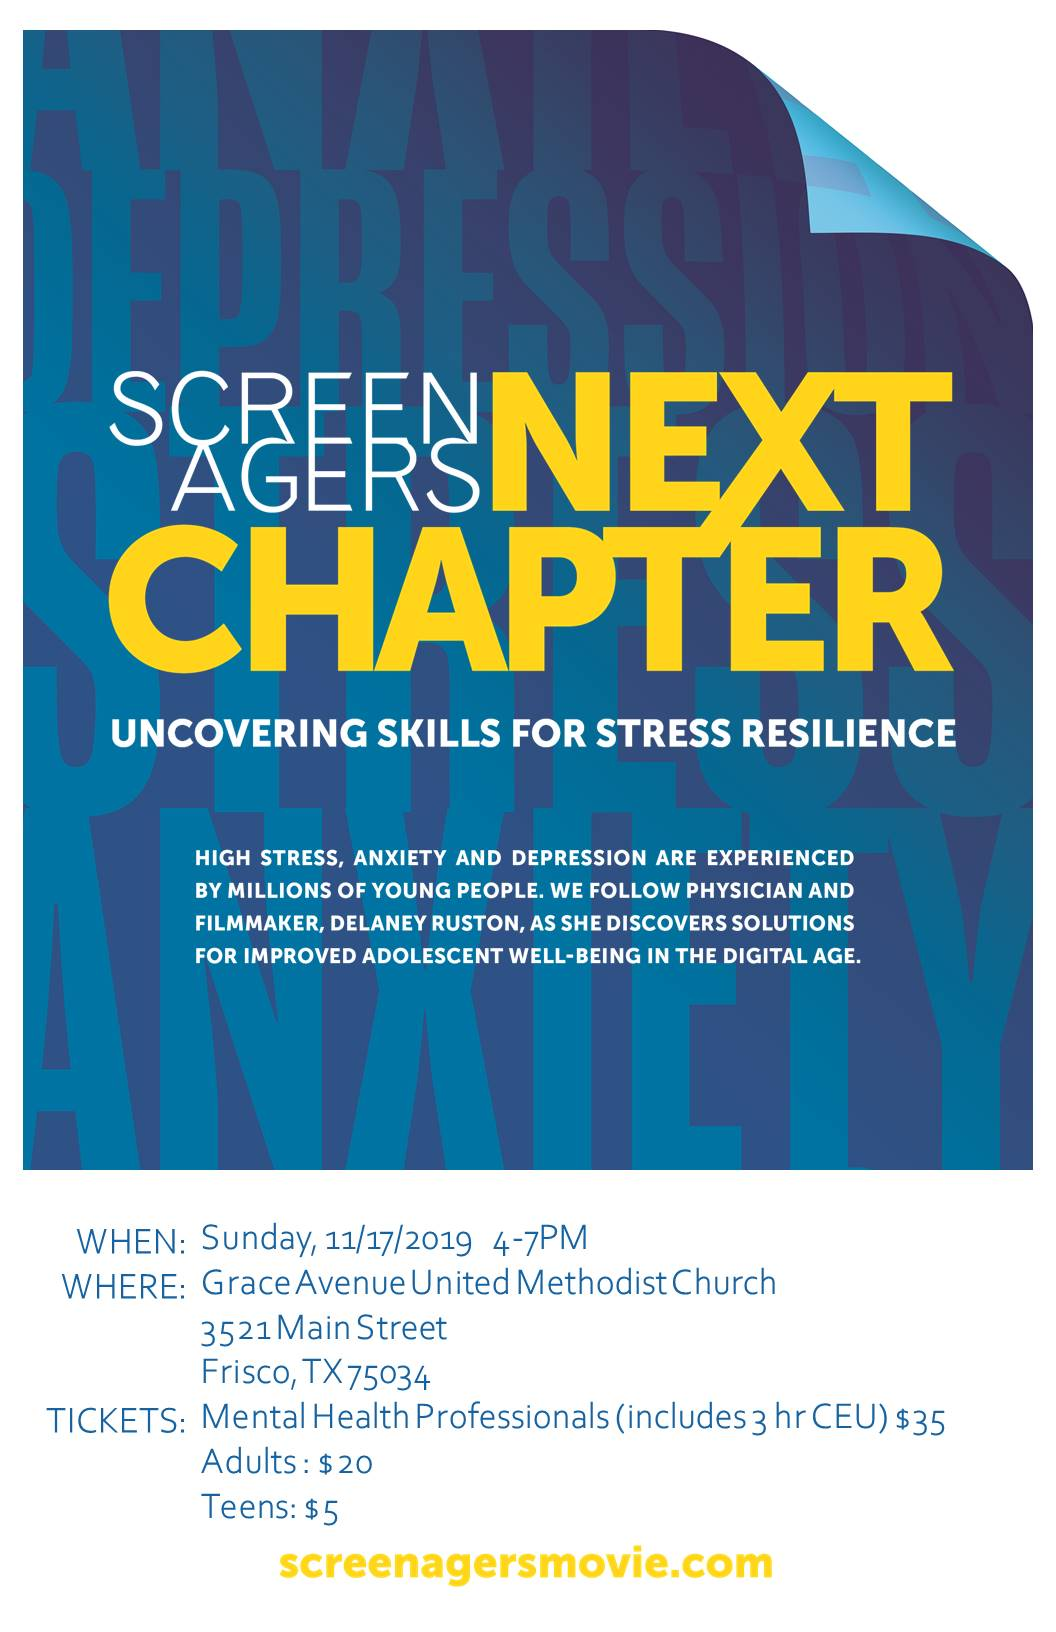 Screenagers Next Chapter By: Spero Counseling Services and Planting Seeds Counseling